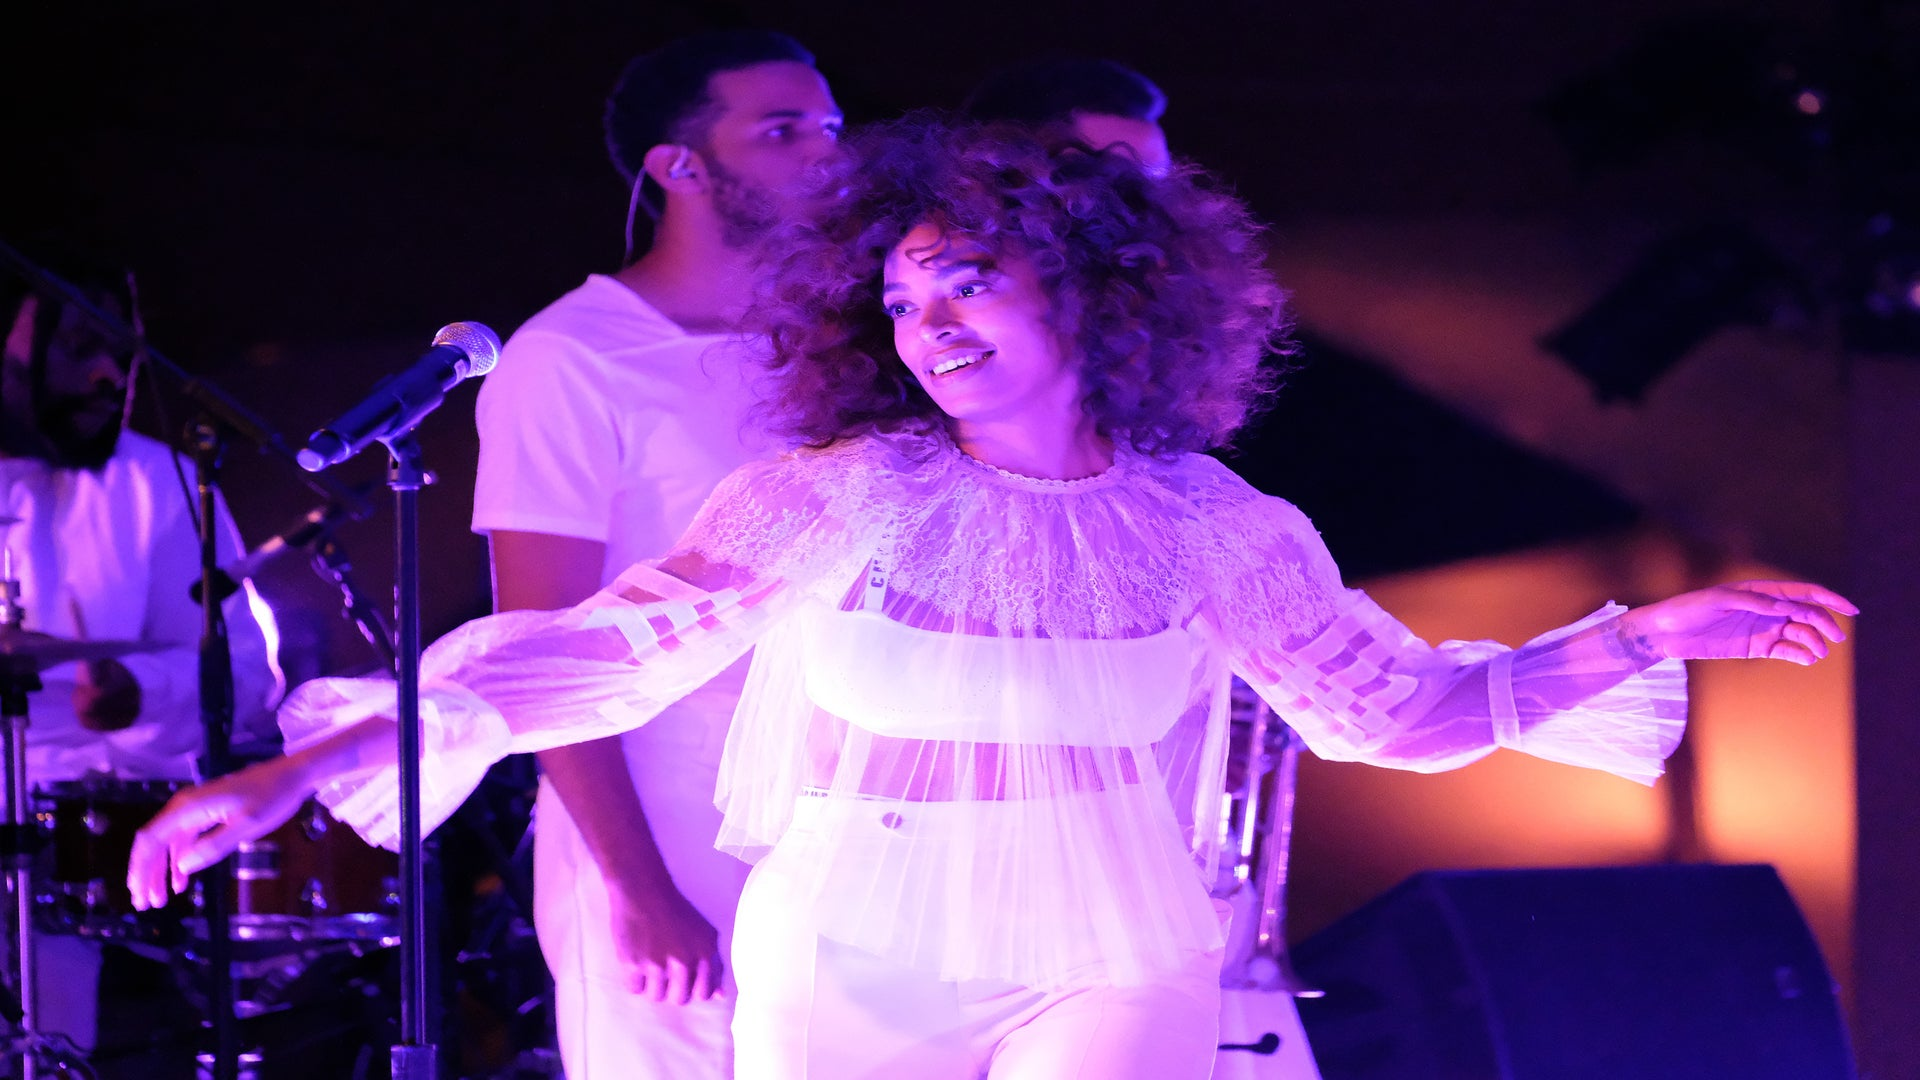 Solange Examines Black Womanhood With New Piece For London Museum